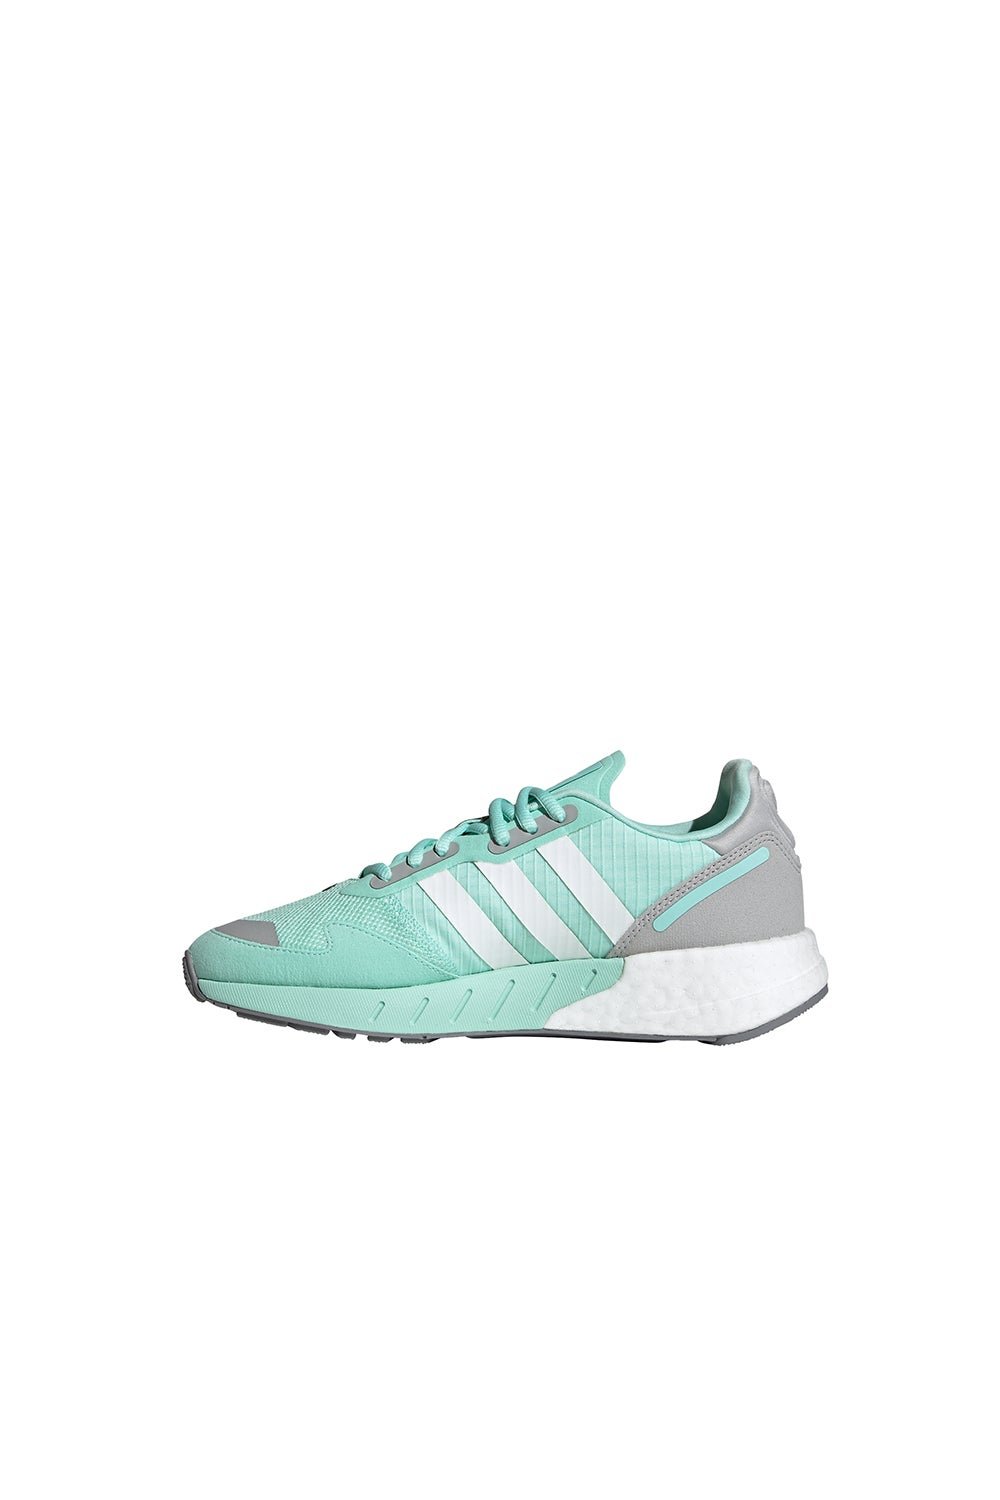 adidas ZX 1K Boost Clear Mint